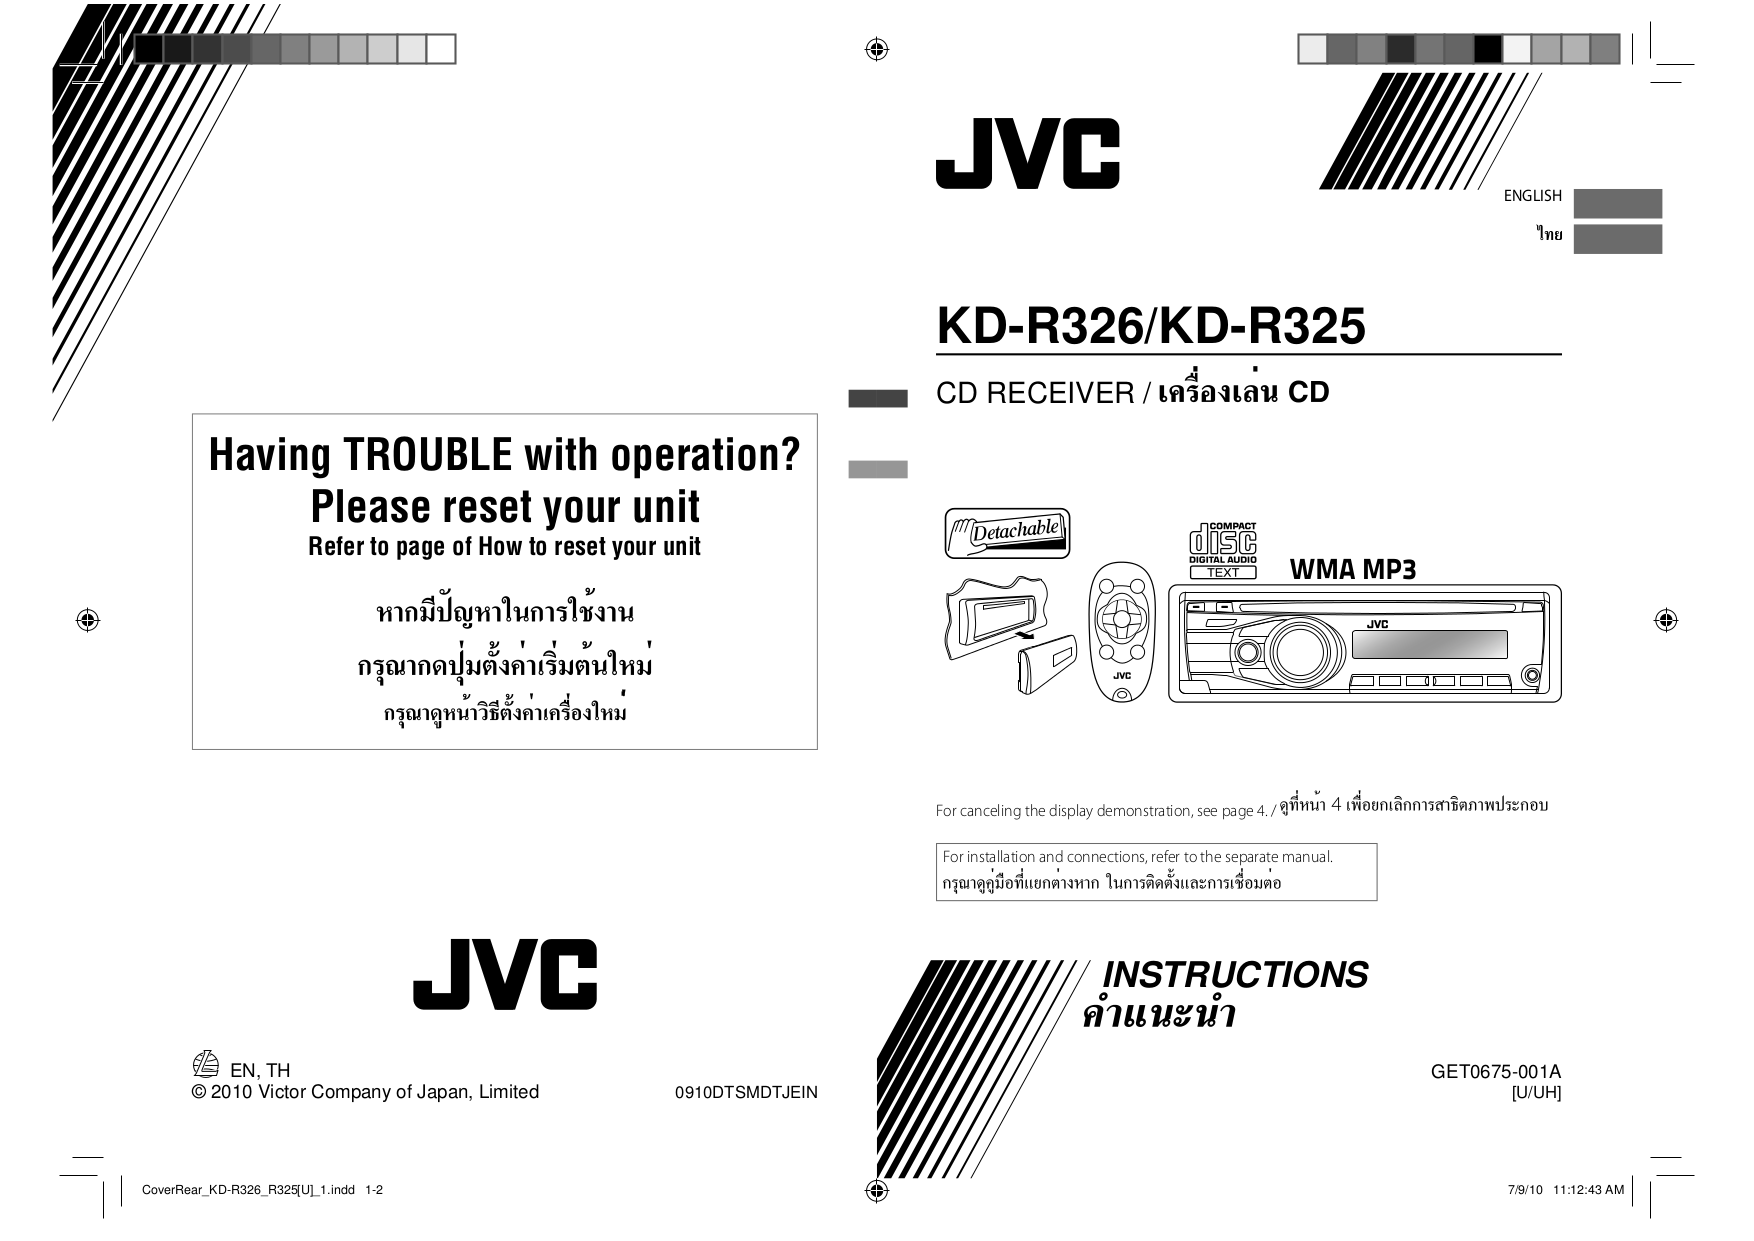 KD R326 Instruction Manual.pdf 0 jvc kd r326 wiring diagram jvc kd r326 wiring diagram \u2022 free jvc kd r320 wiring diagram at webbmarketing.co